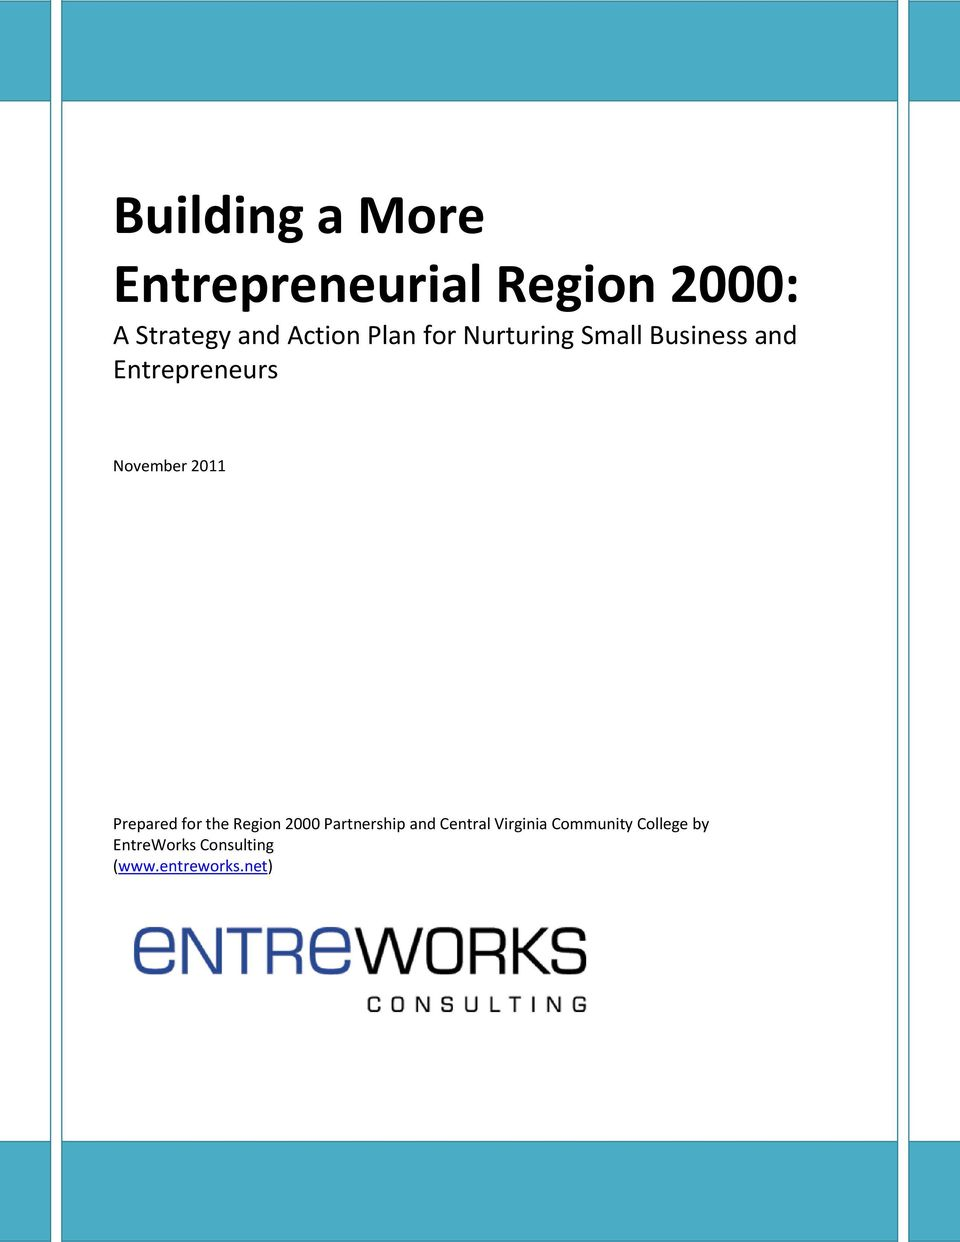 November 2011 Prepared for the Region 2000 Partnership and